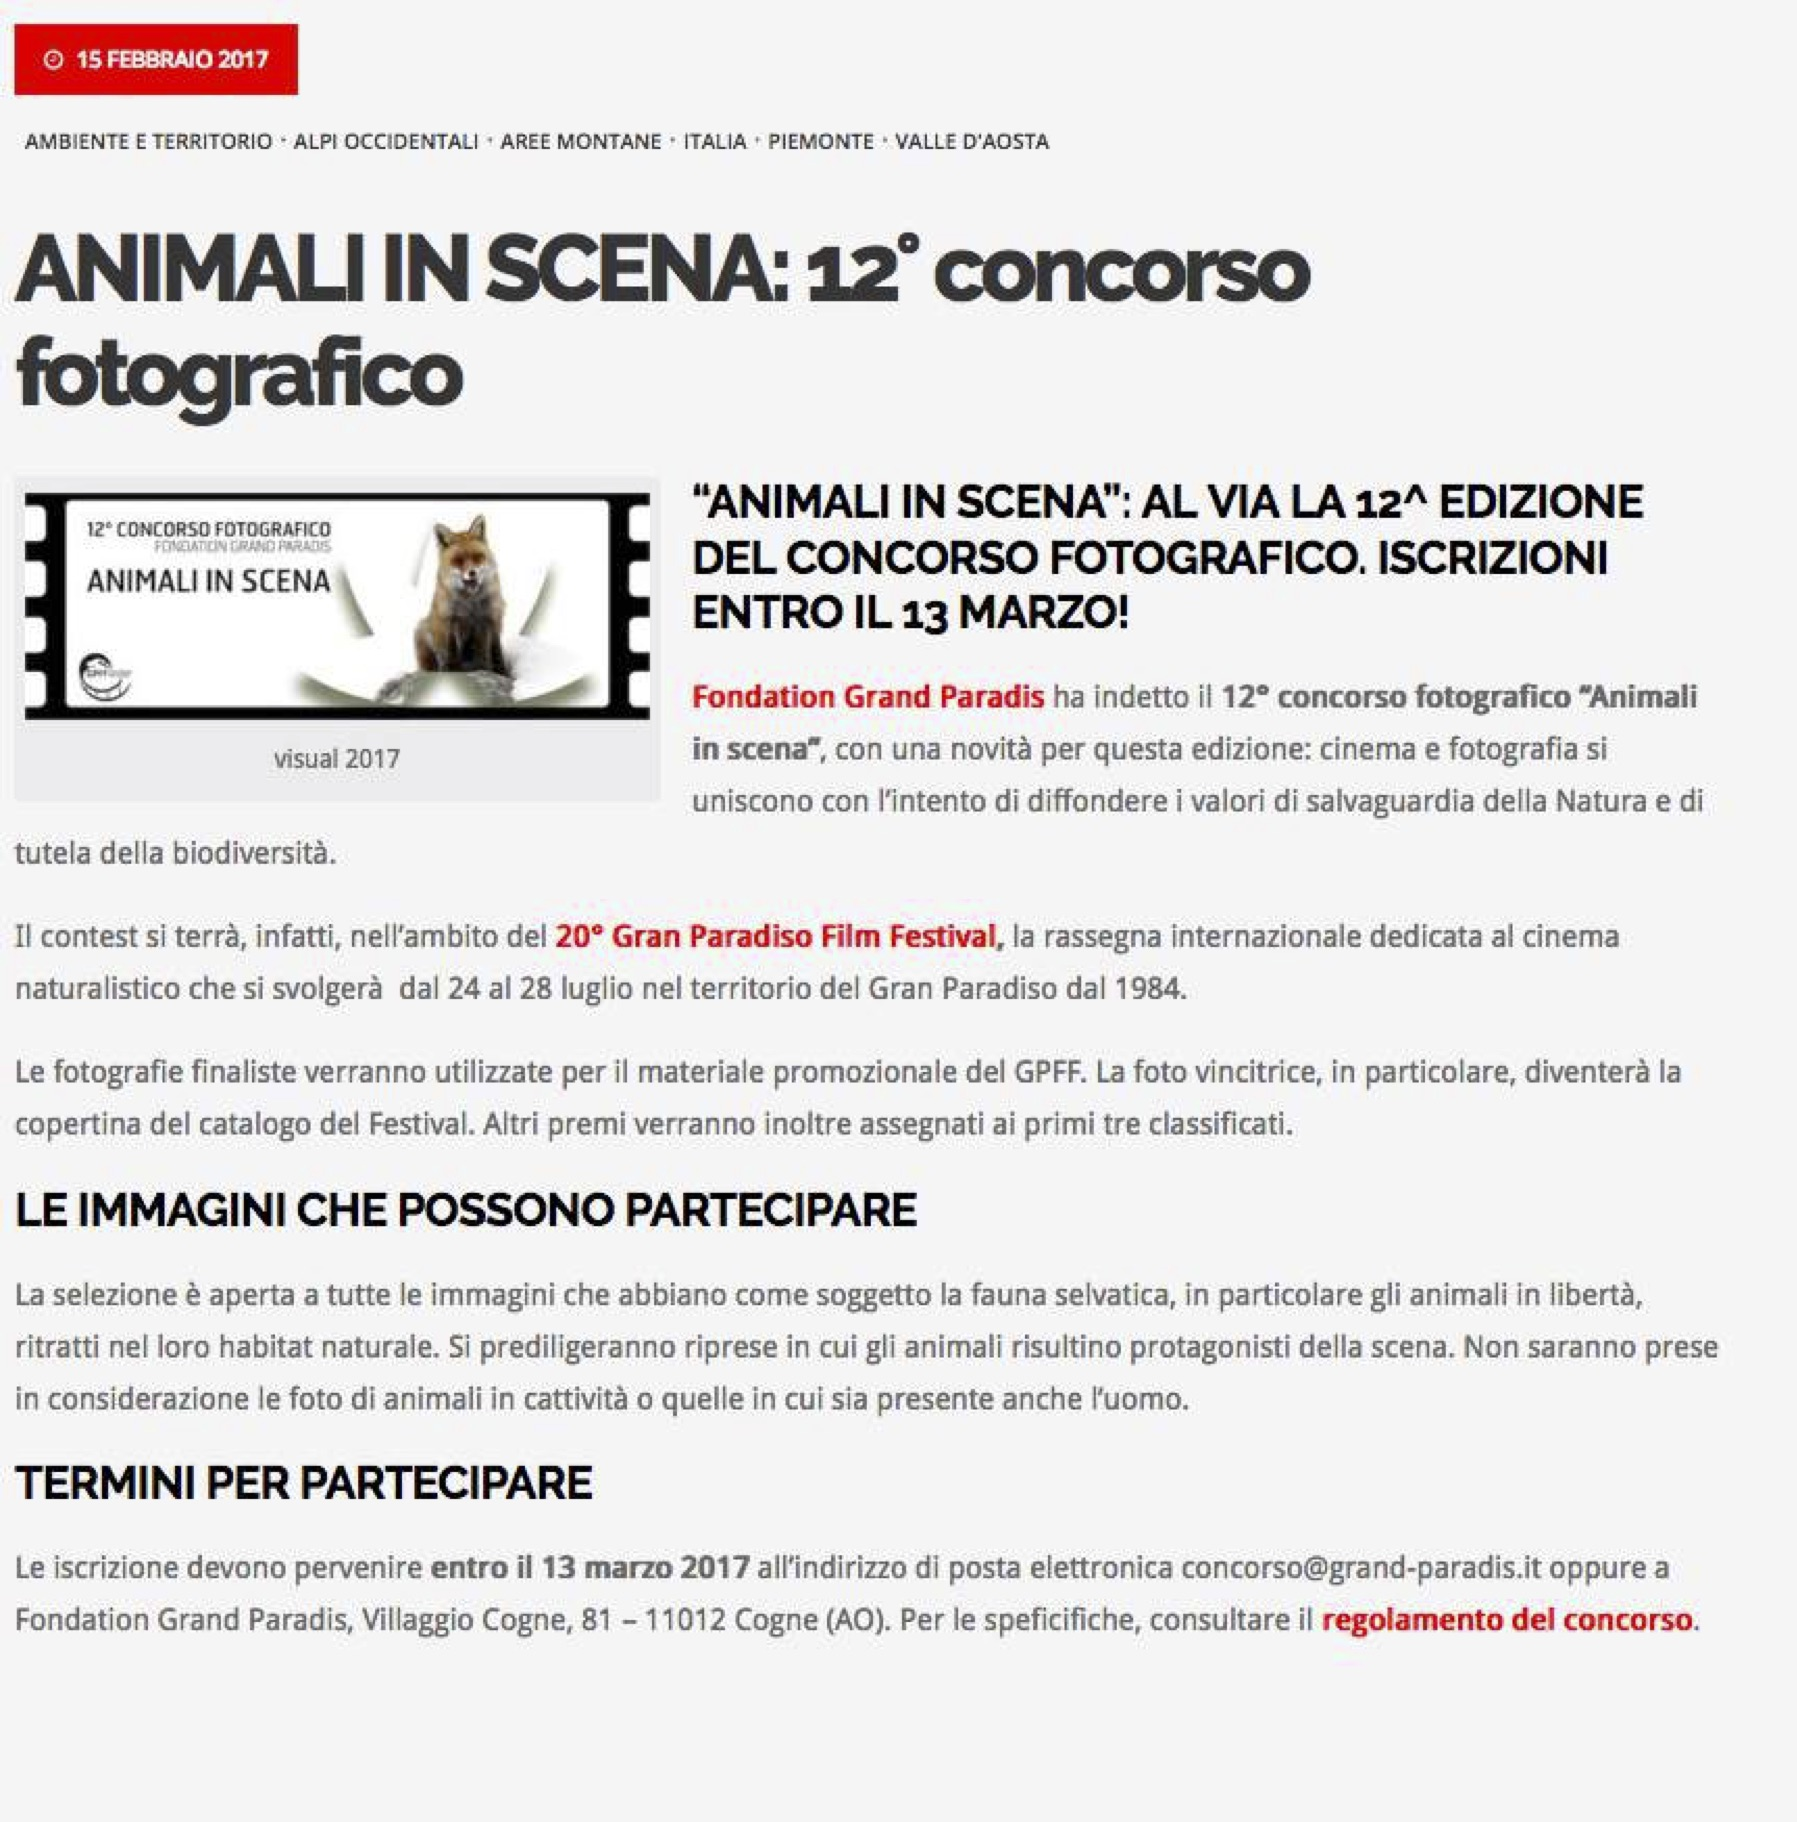 2017-02-15 Mountainblog Animali in scena 12concorso fotografico